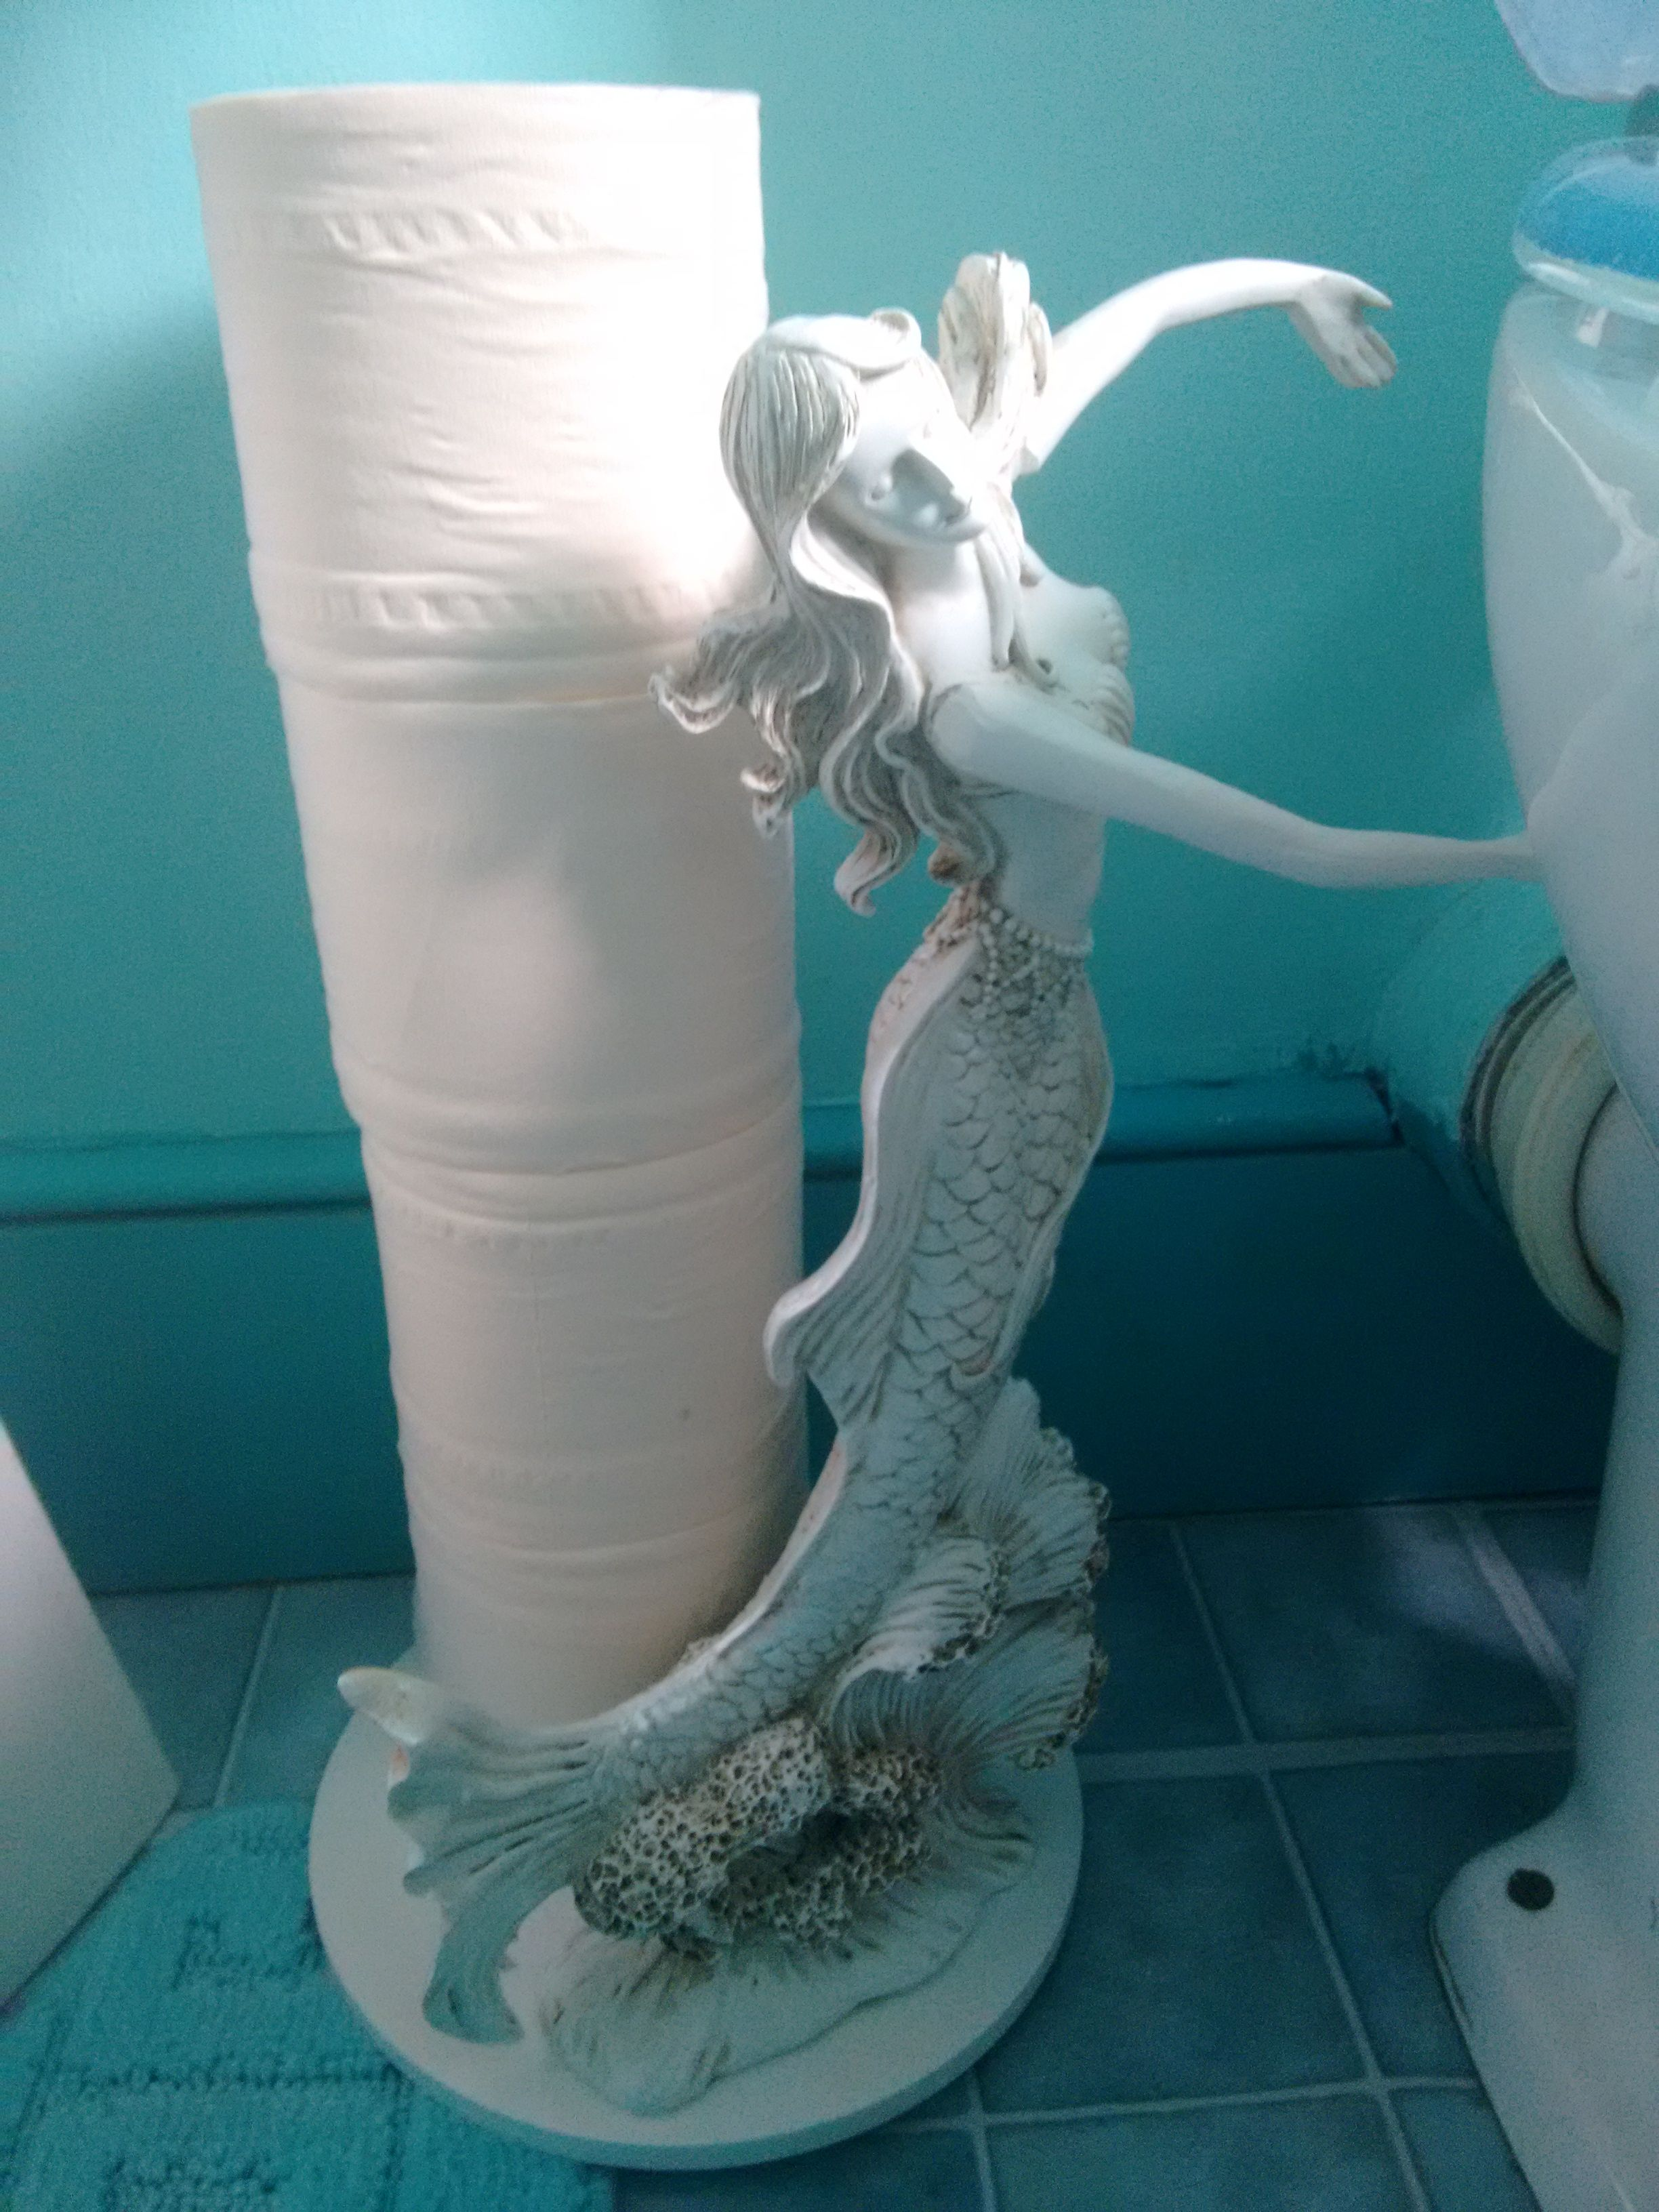 NEW Mermaid Toilet Paper Holder Nautical Home Décor FREE SHIPPING